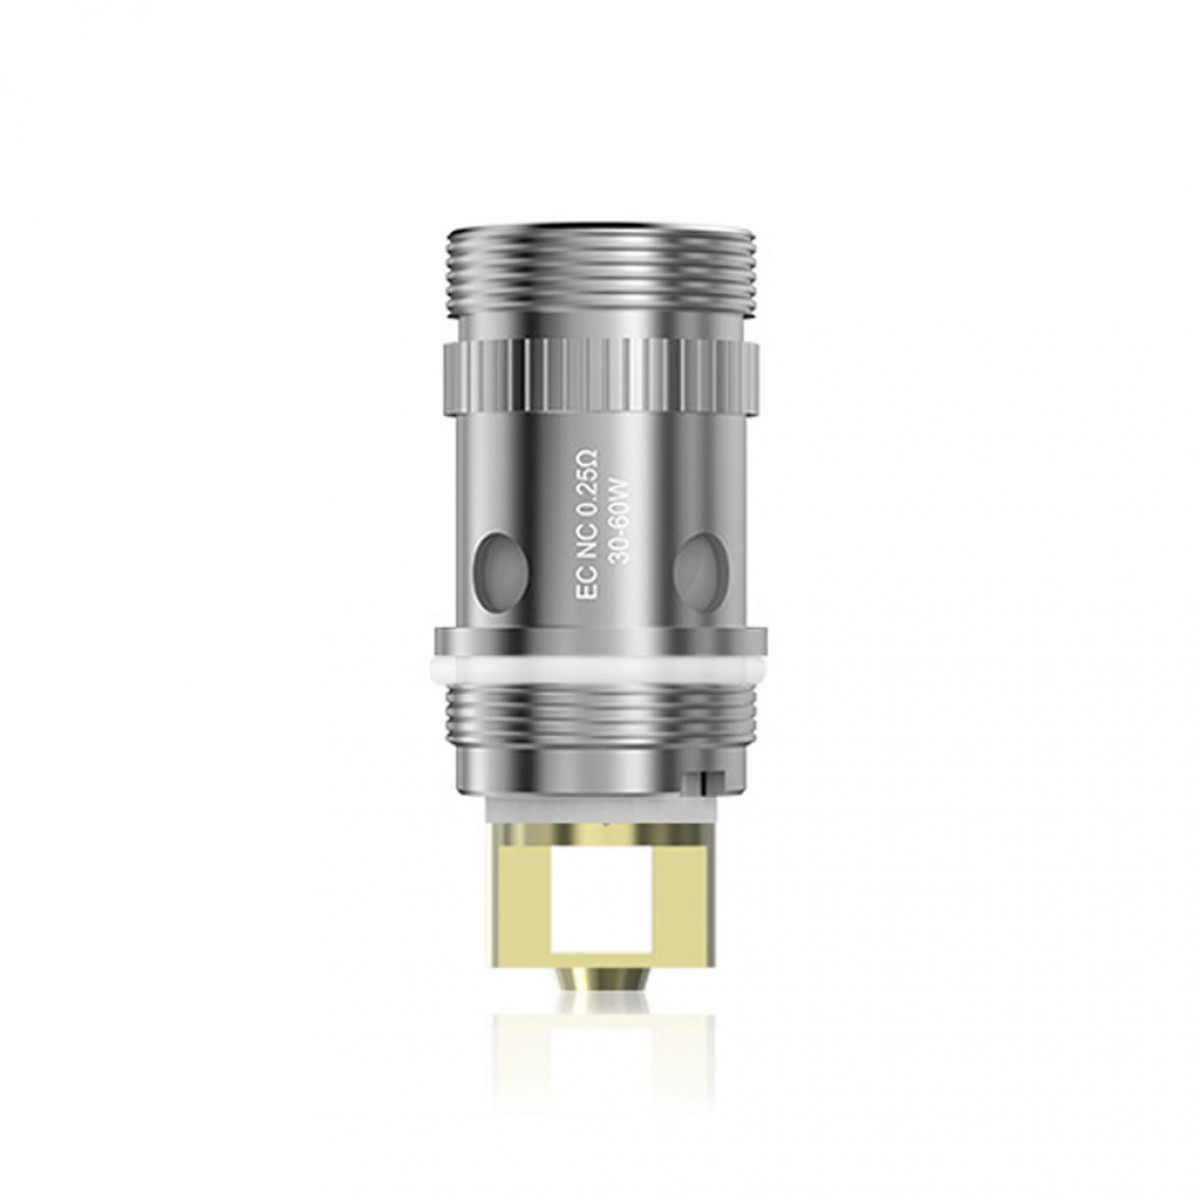 Атомайзеры Eleaf ECL Coil Head - 0.18 ohm